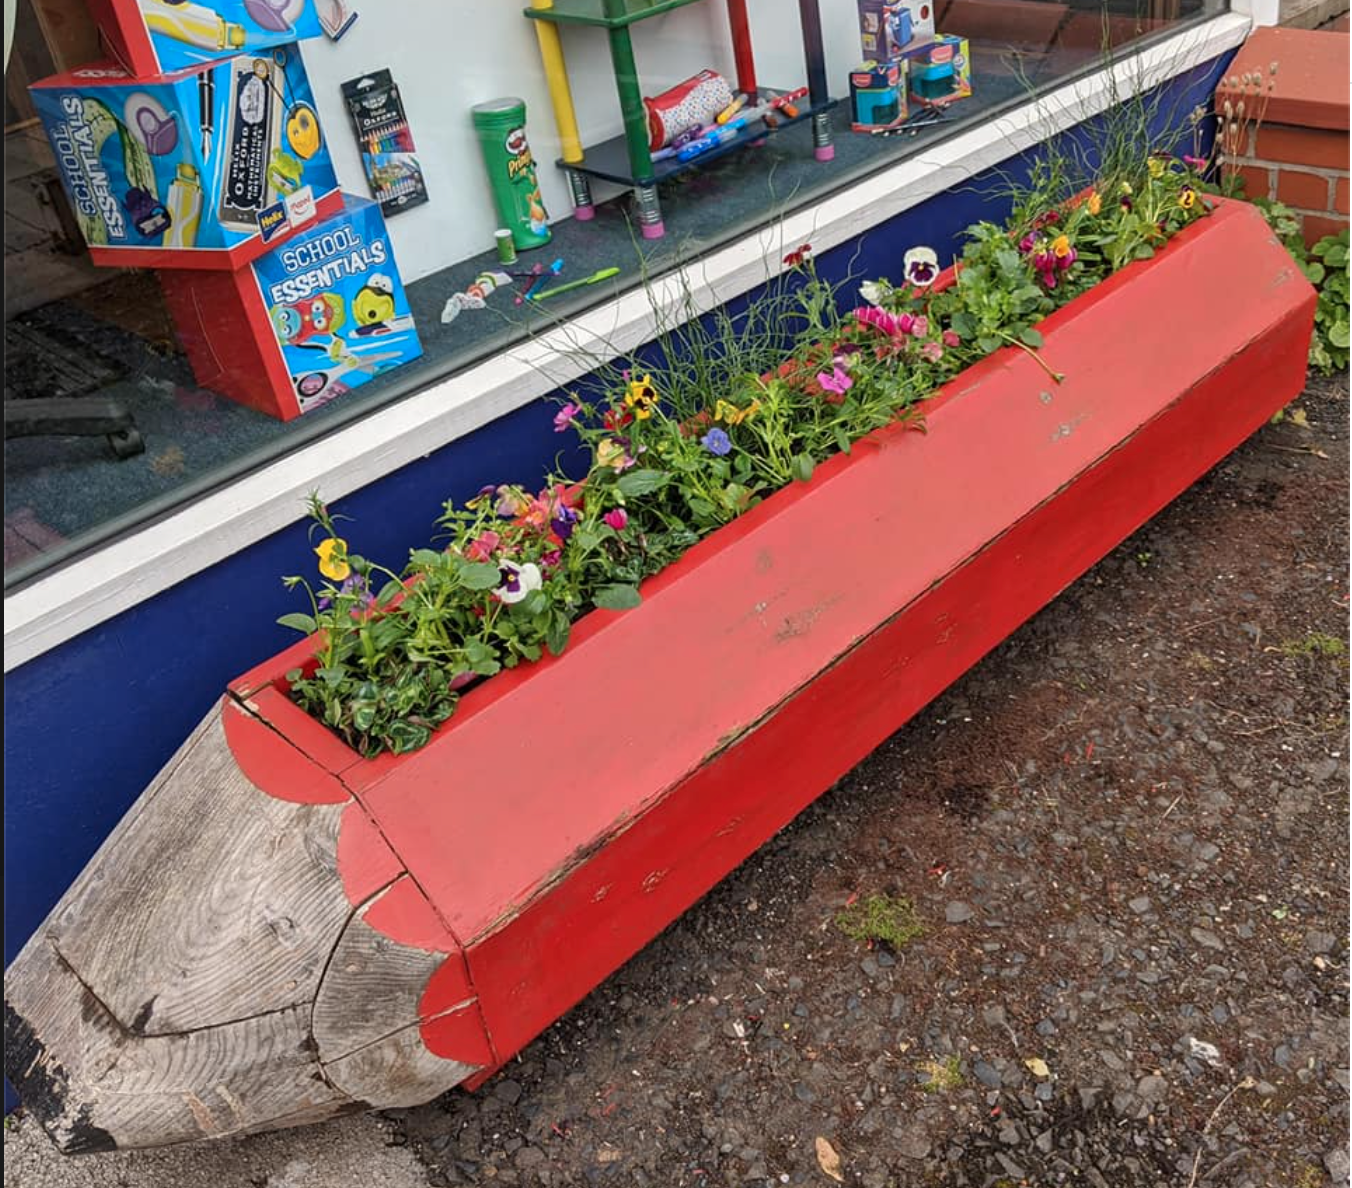 Above: A pencil planter will also be added outside the new Wilmslow store to add to the continuity between the two stores.